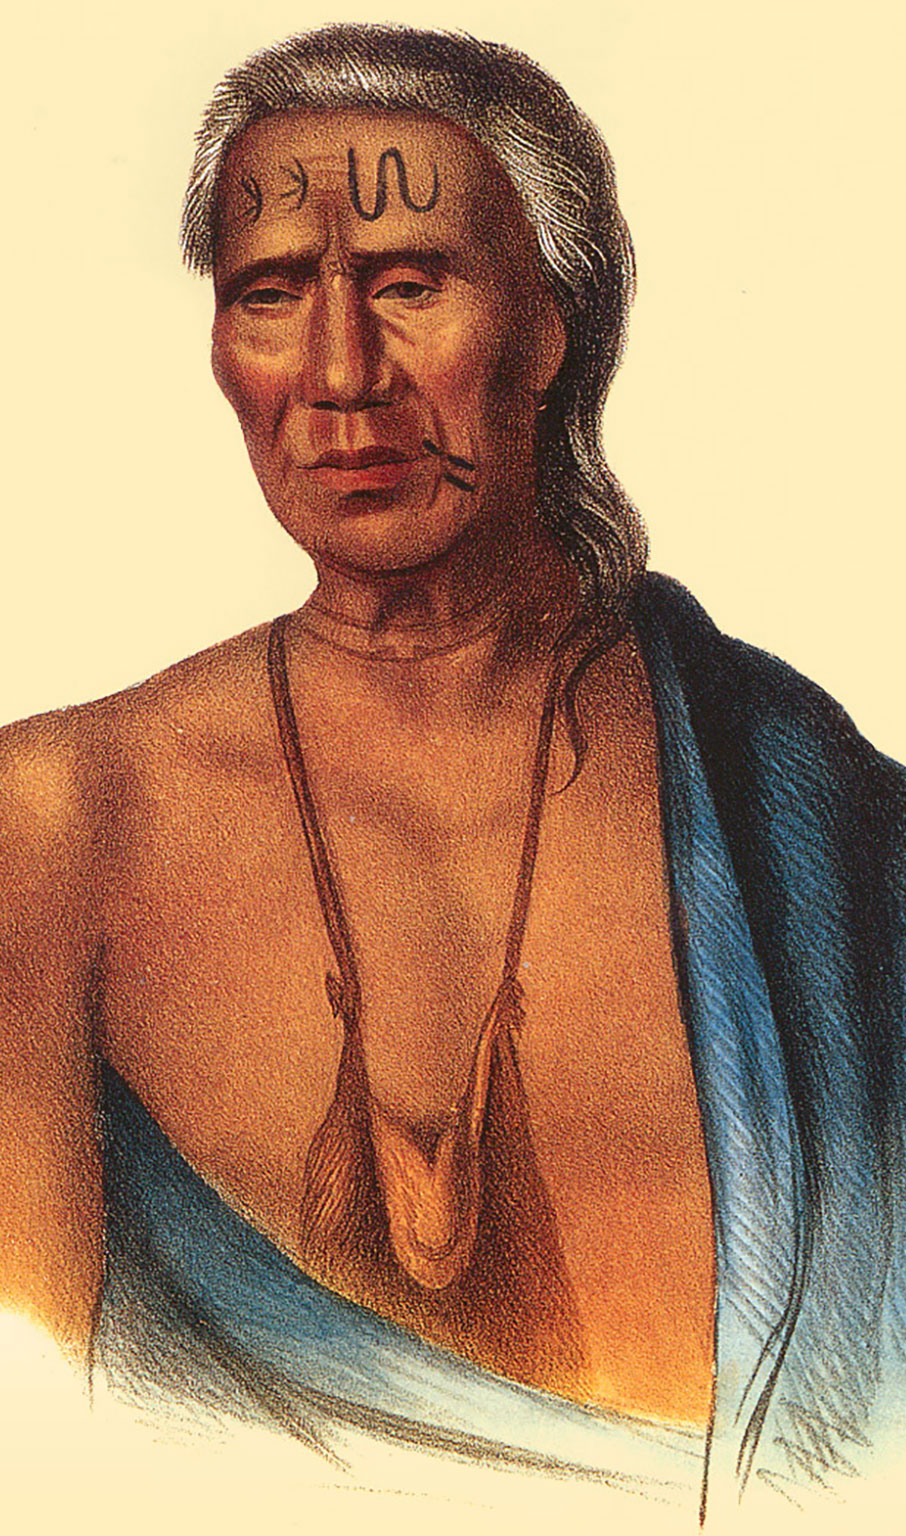 Lapowinsa, Chief of the Lenape, Lappawinsoe painted by Gustavus Hesselius in 1735.